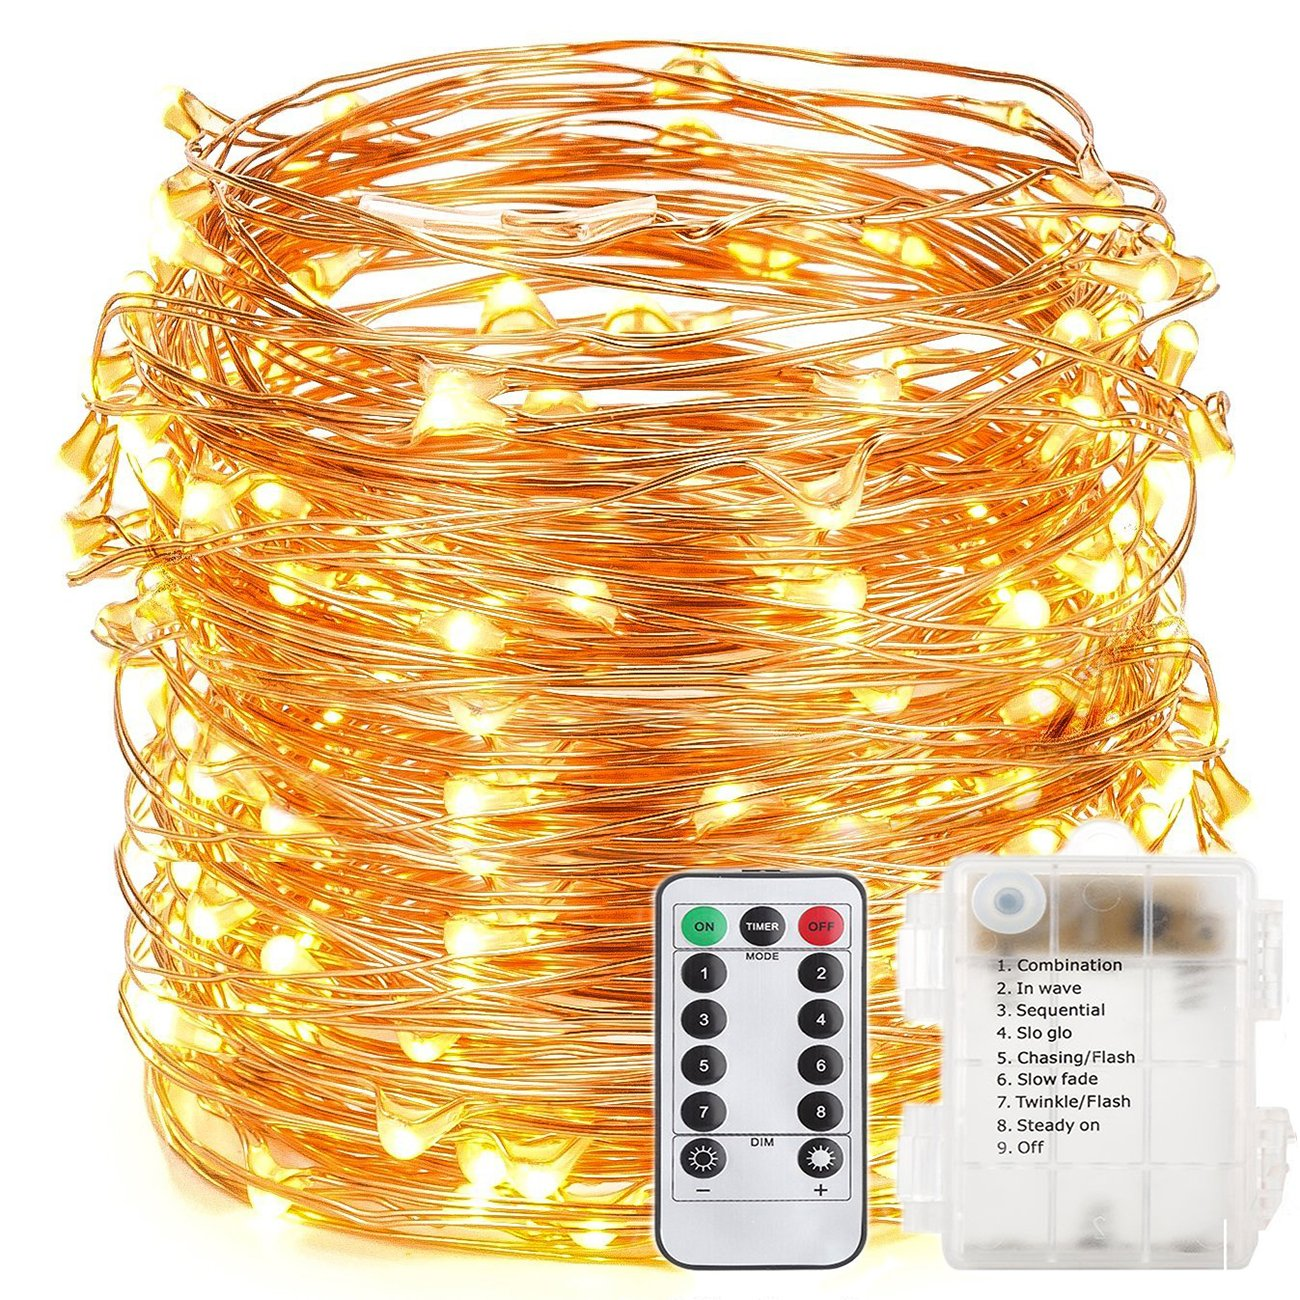 EAGWELL 200 LED Fairy String Lights Battery Operated String Lights 65.6 ft Copper Wire Decorative Christmas Lights for Bedroom Wedding Halloween Thanksgiving Christmas Decor -Warm White